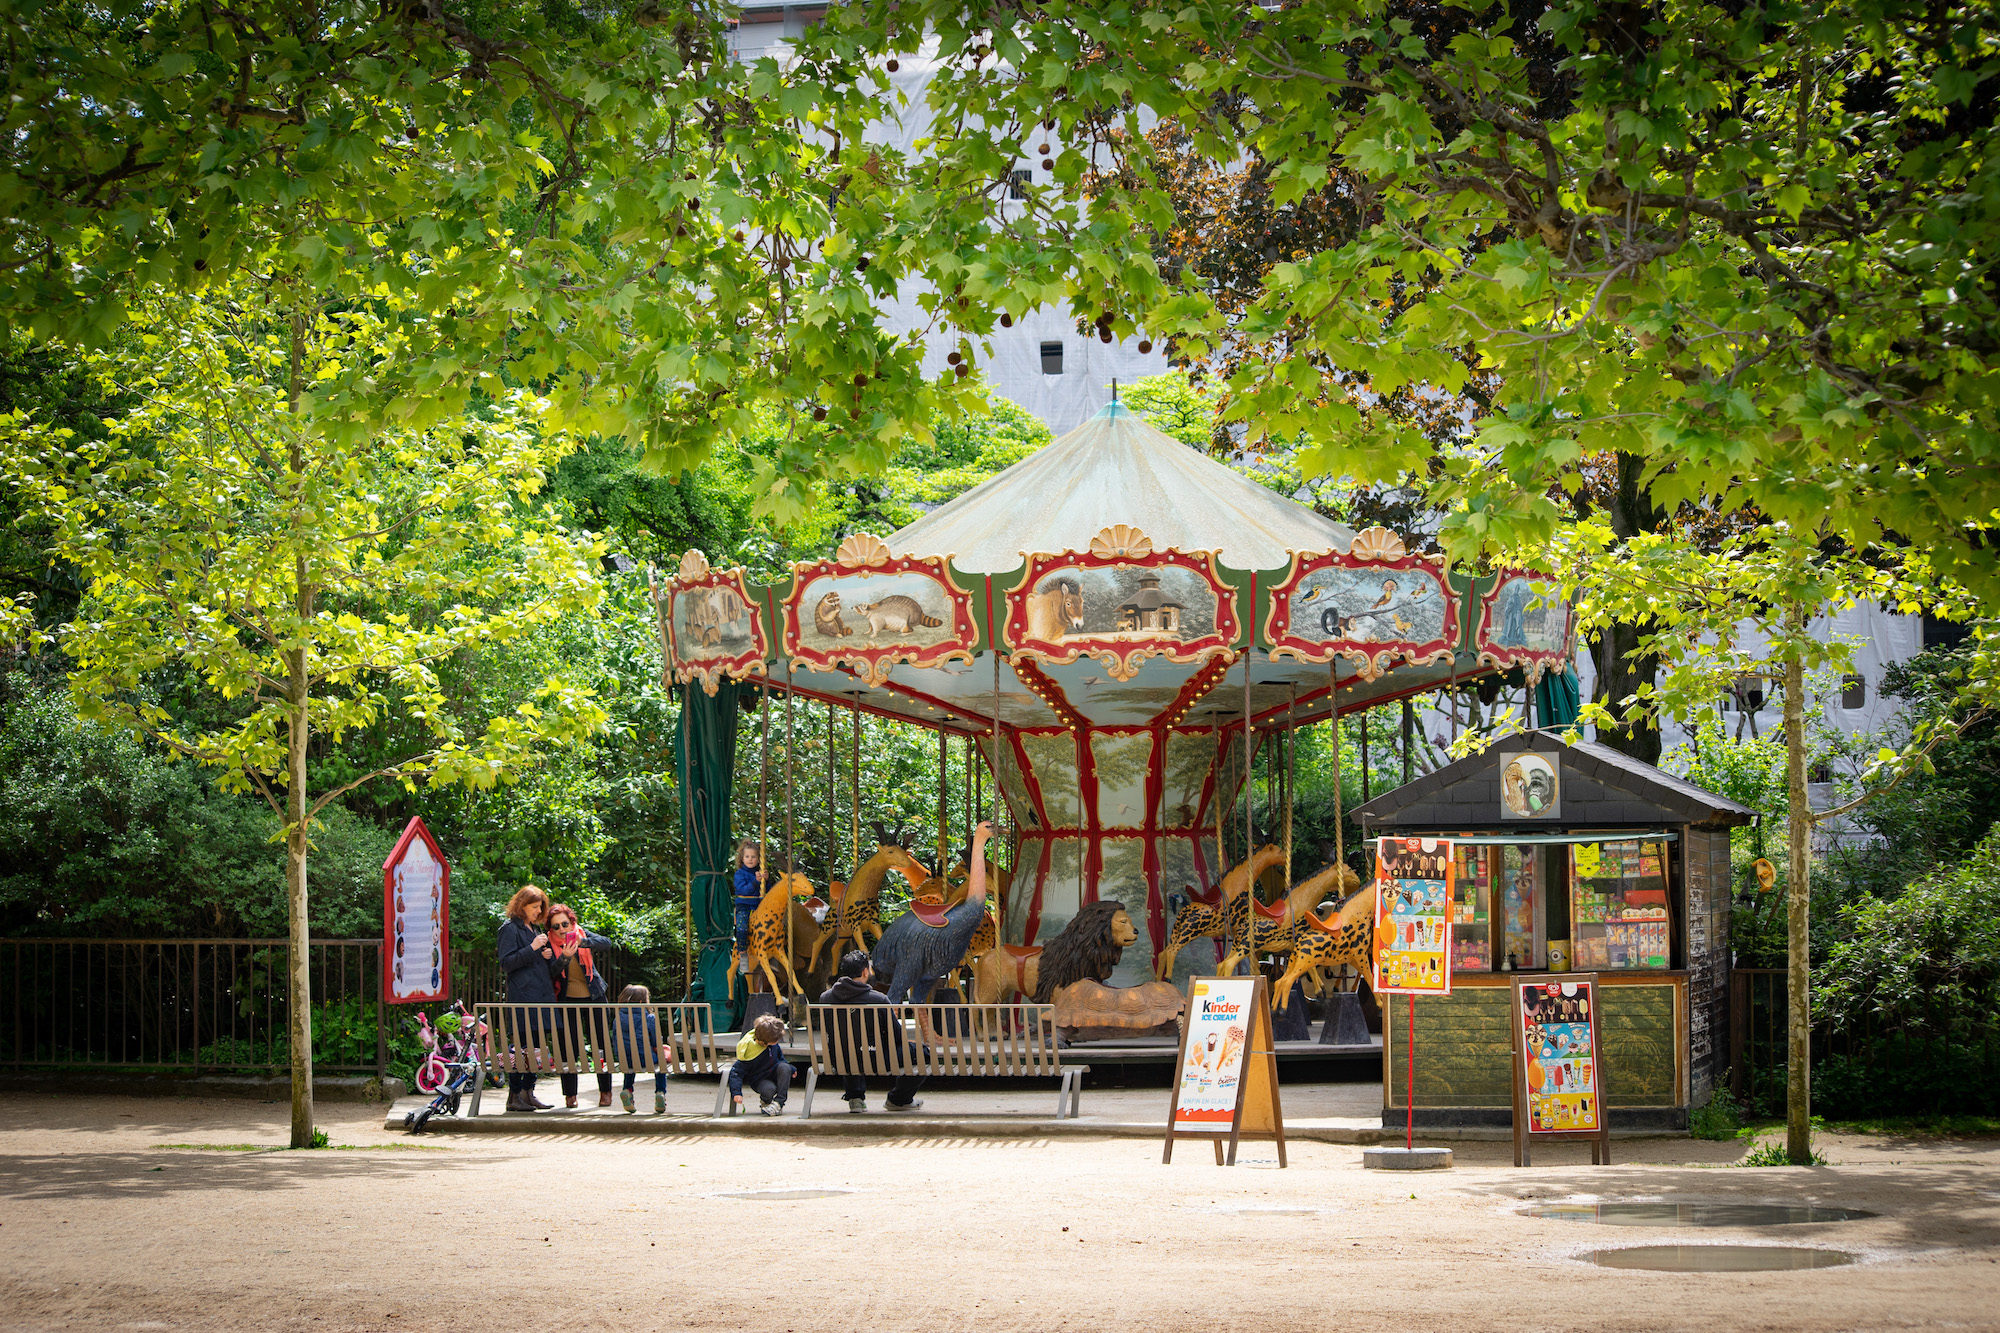 Kids in Paris love the colorful merry-go-rounds dotted about the city.